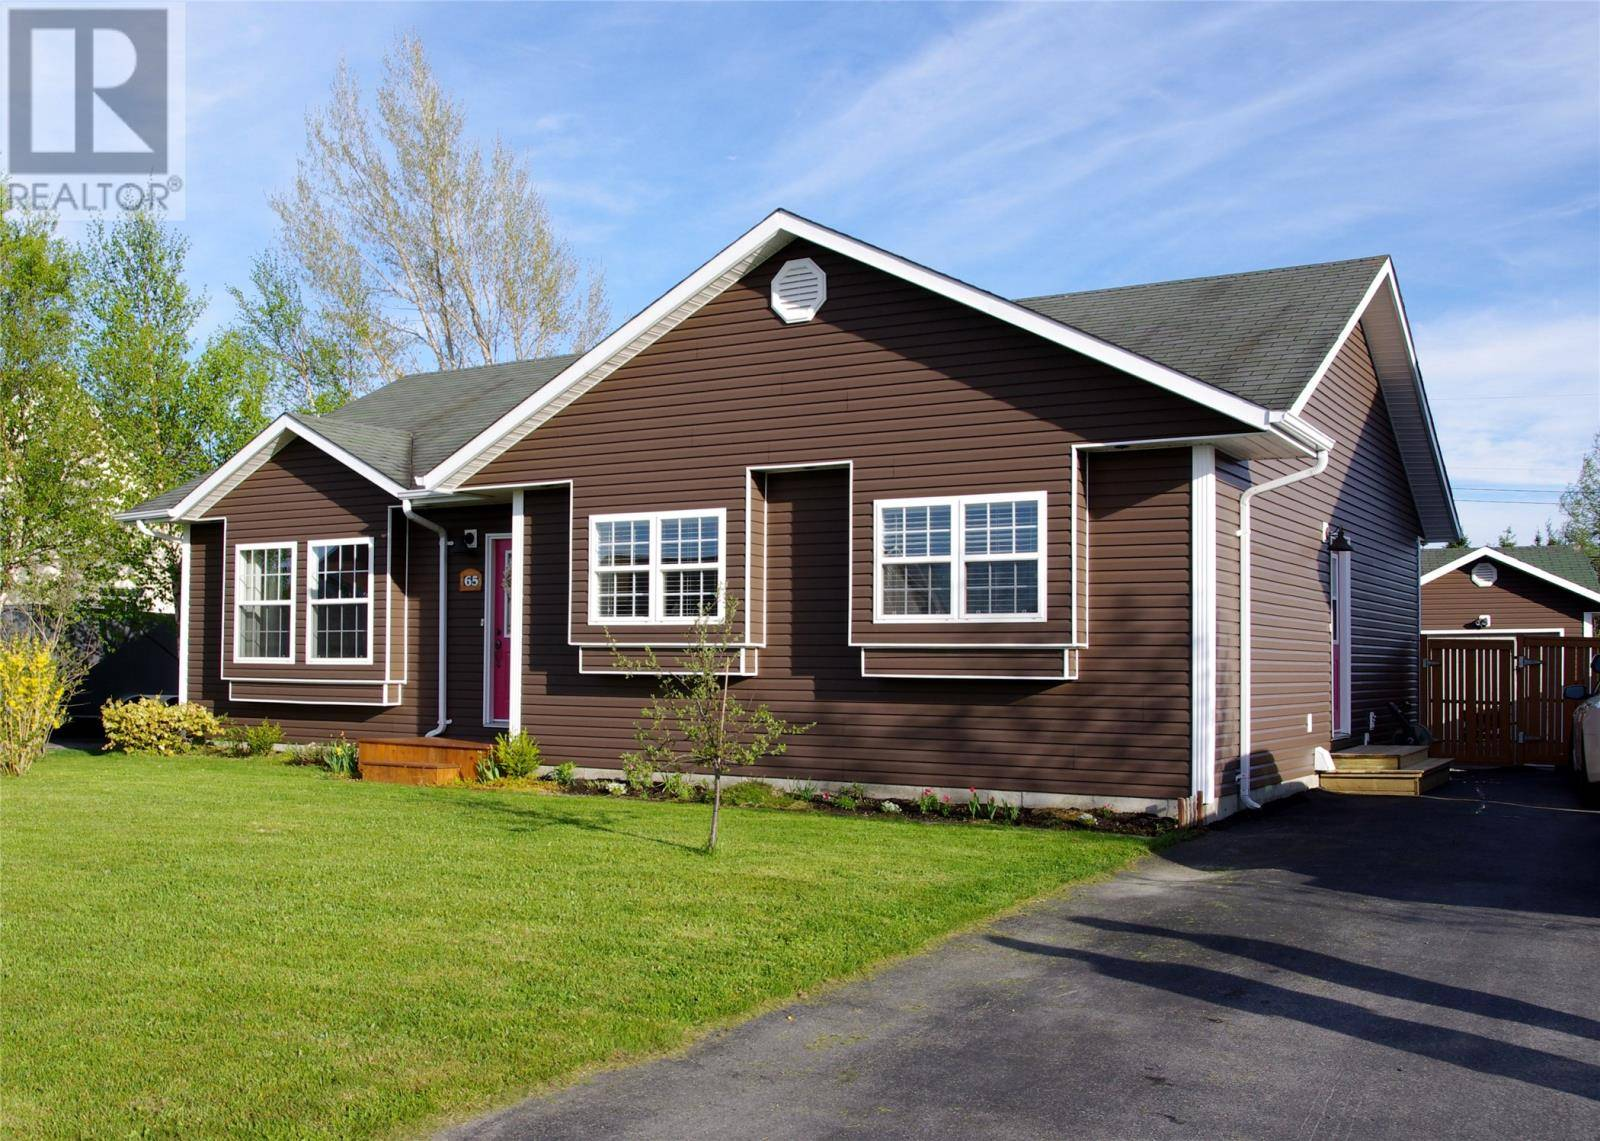 House for sale at 65 Rowsell Blvd Gander Newfoundland - MLS: 1197776